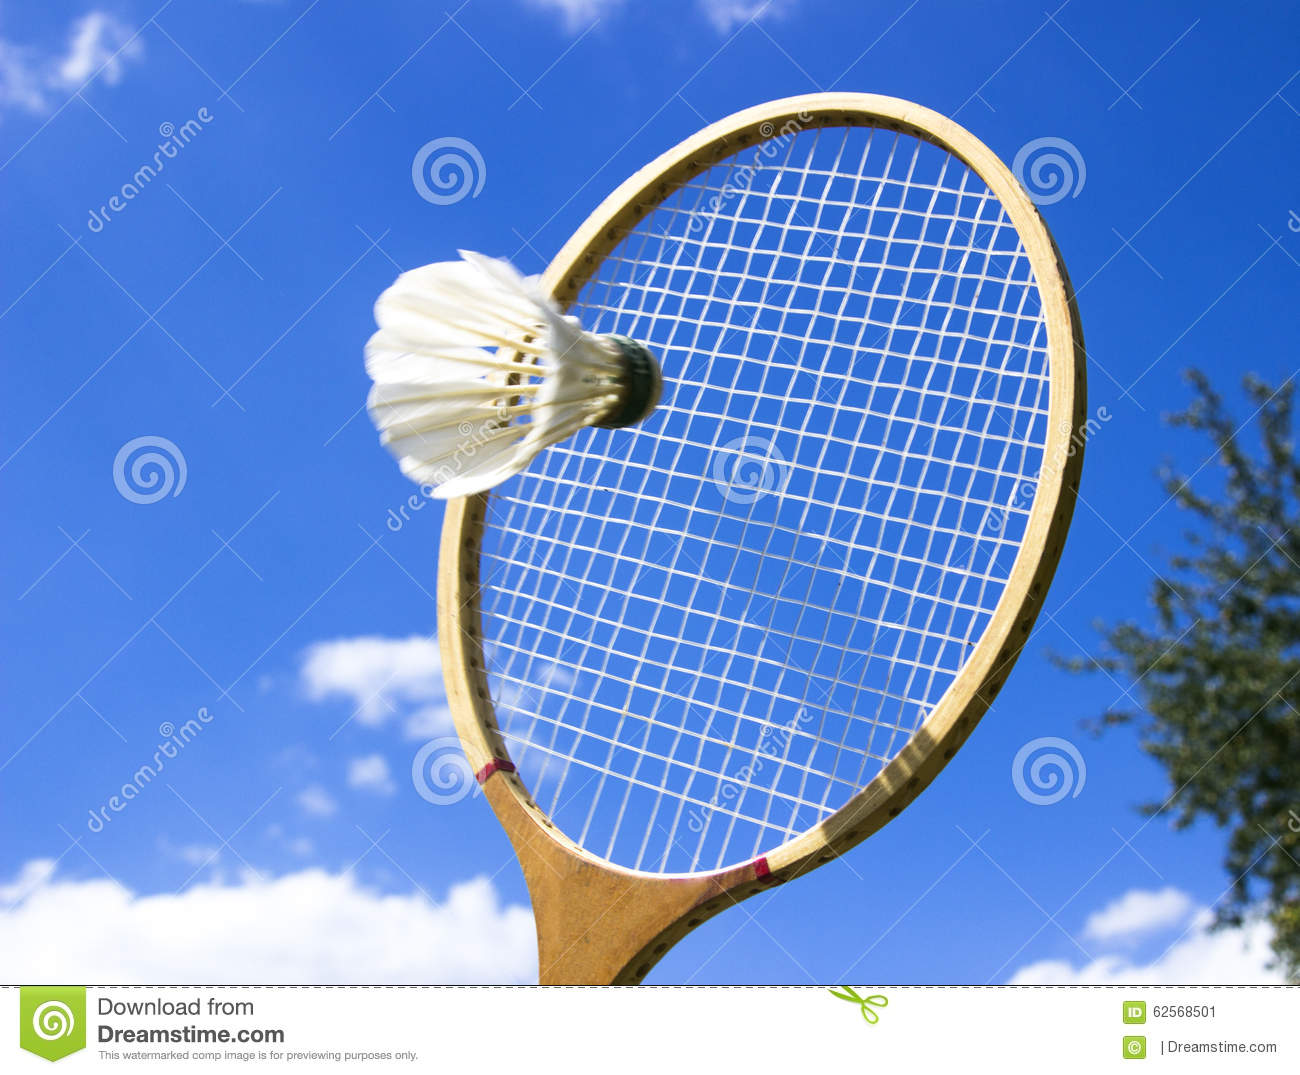 badminton tennis and game A badminton match can be made up of any odd number of games (3 in official matches) the winner of the match is the first to win more than half the number of games (e g the first to win 2 games in a 3 game match).